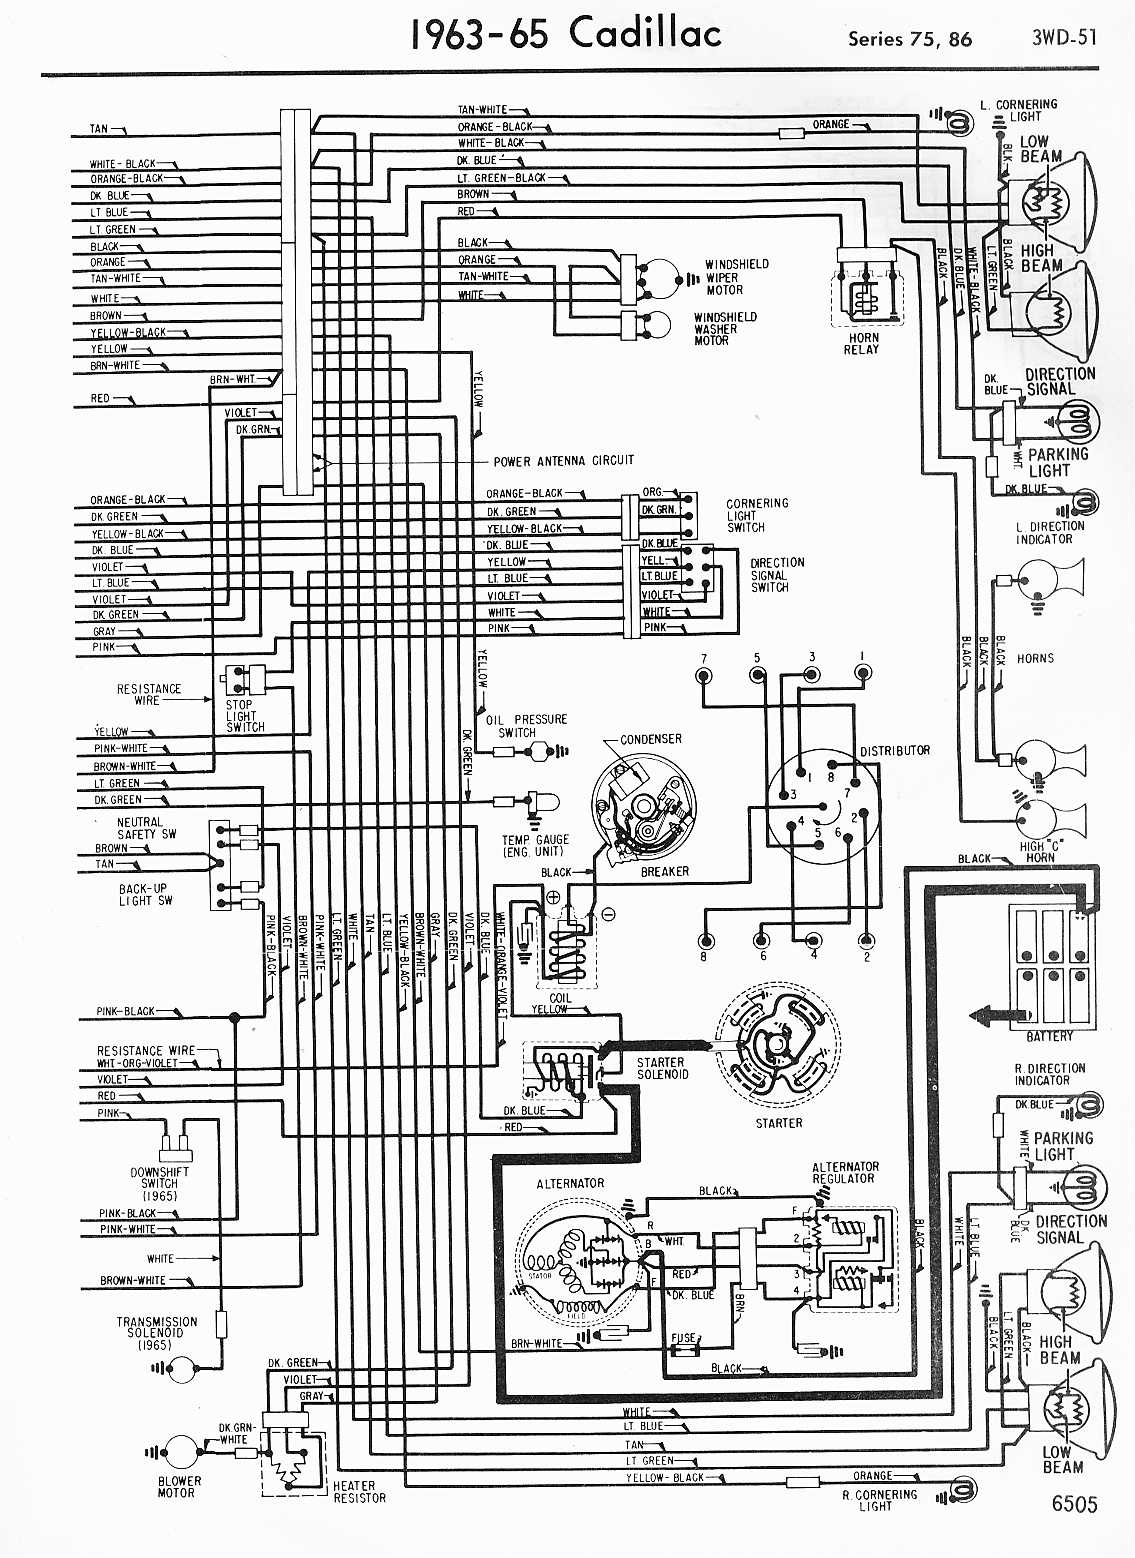 Cadillac Wiring Diagrams 1957 1965 Gm Stereo Diagram 1964 Series 75 Right